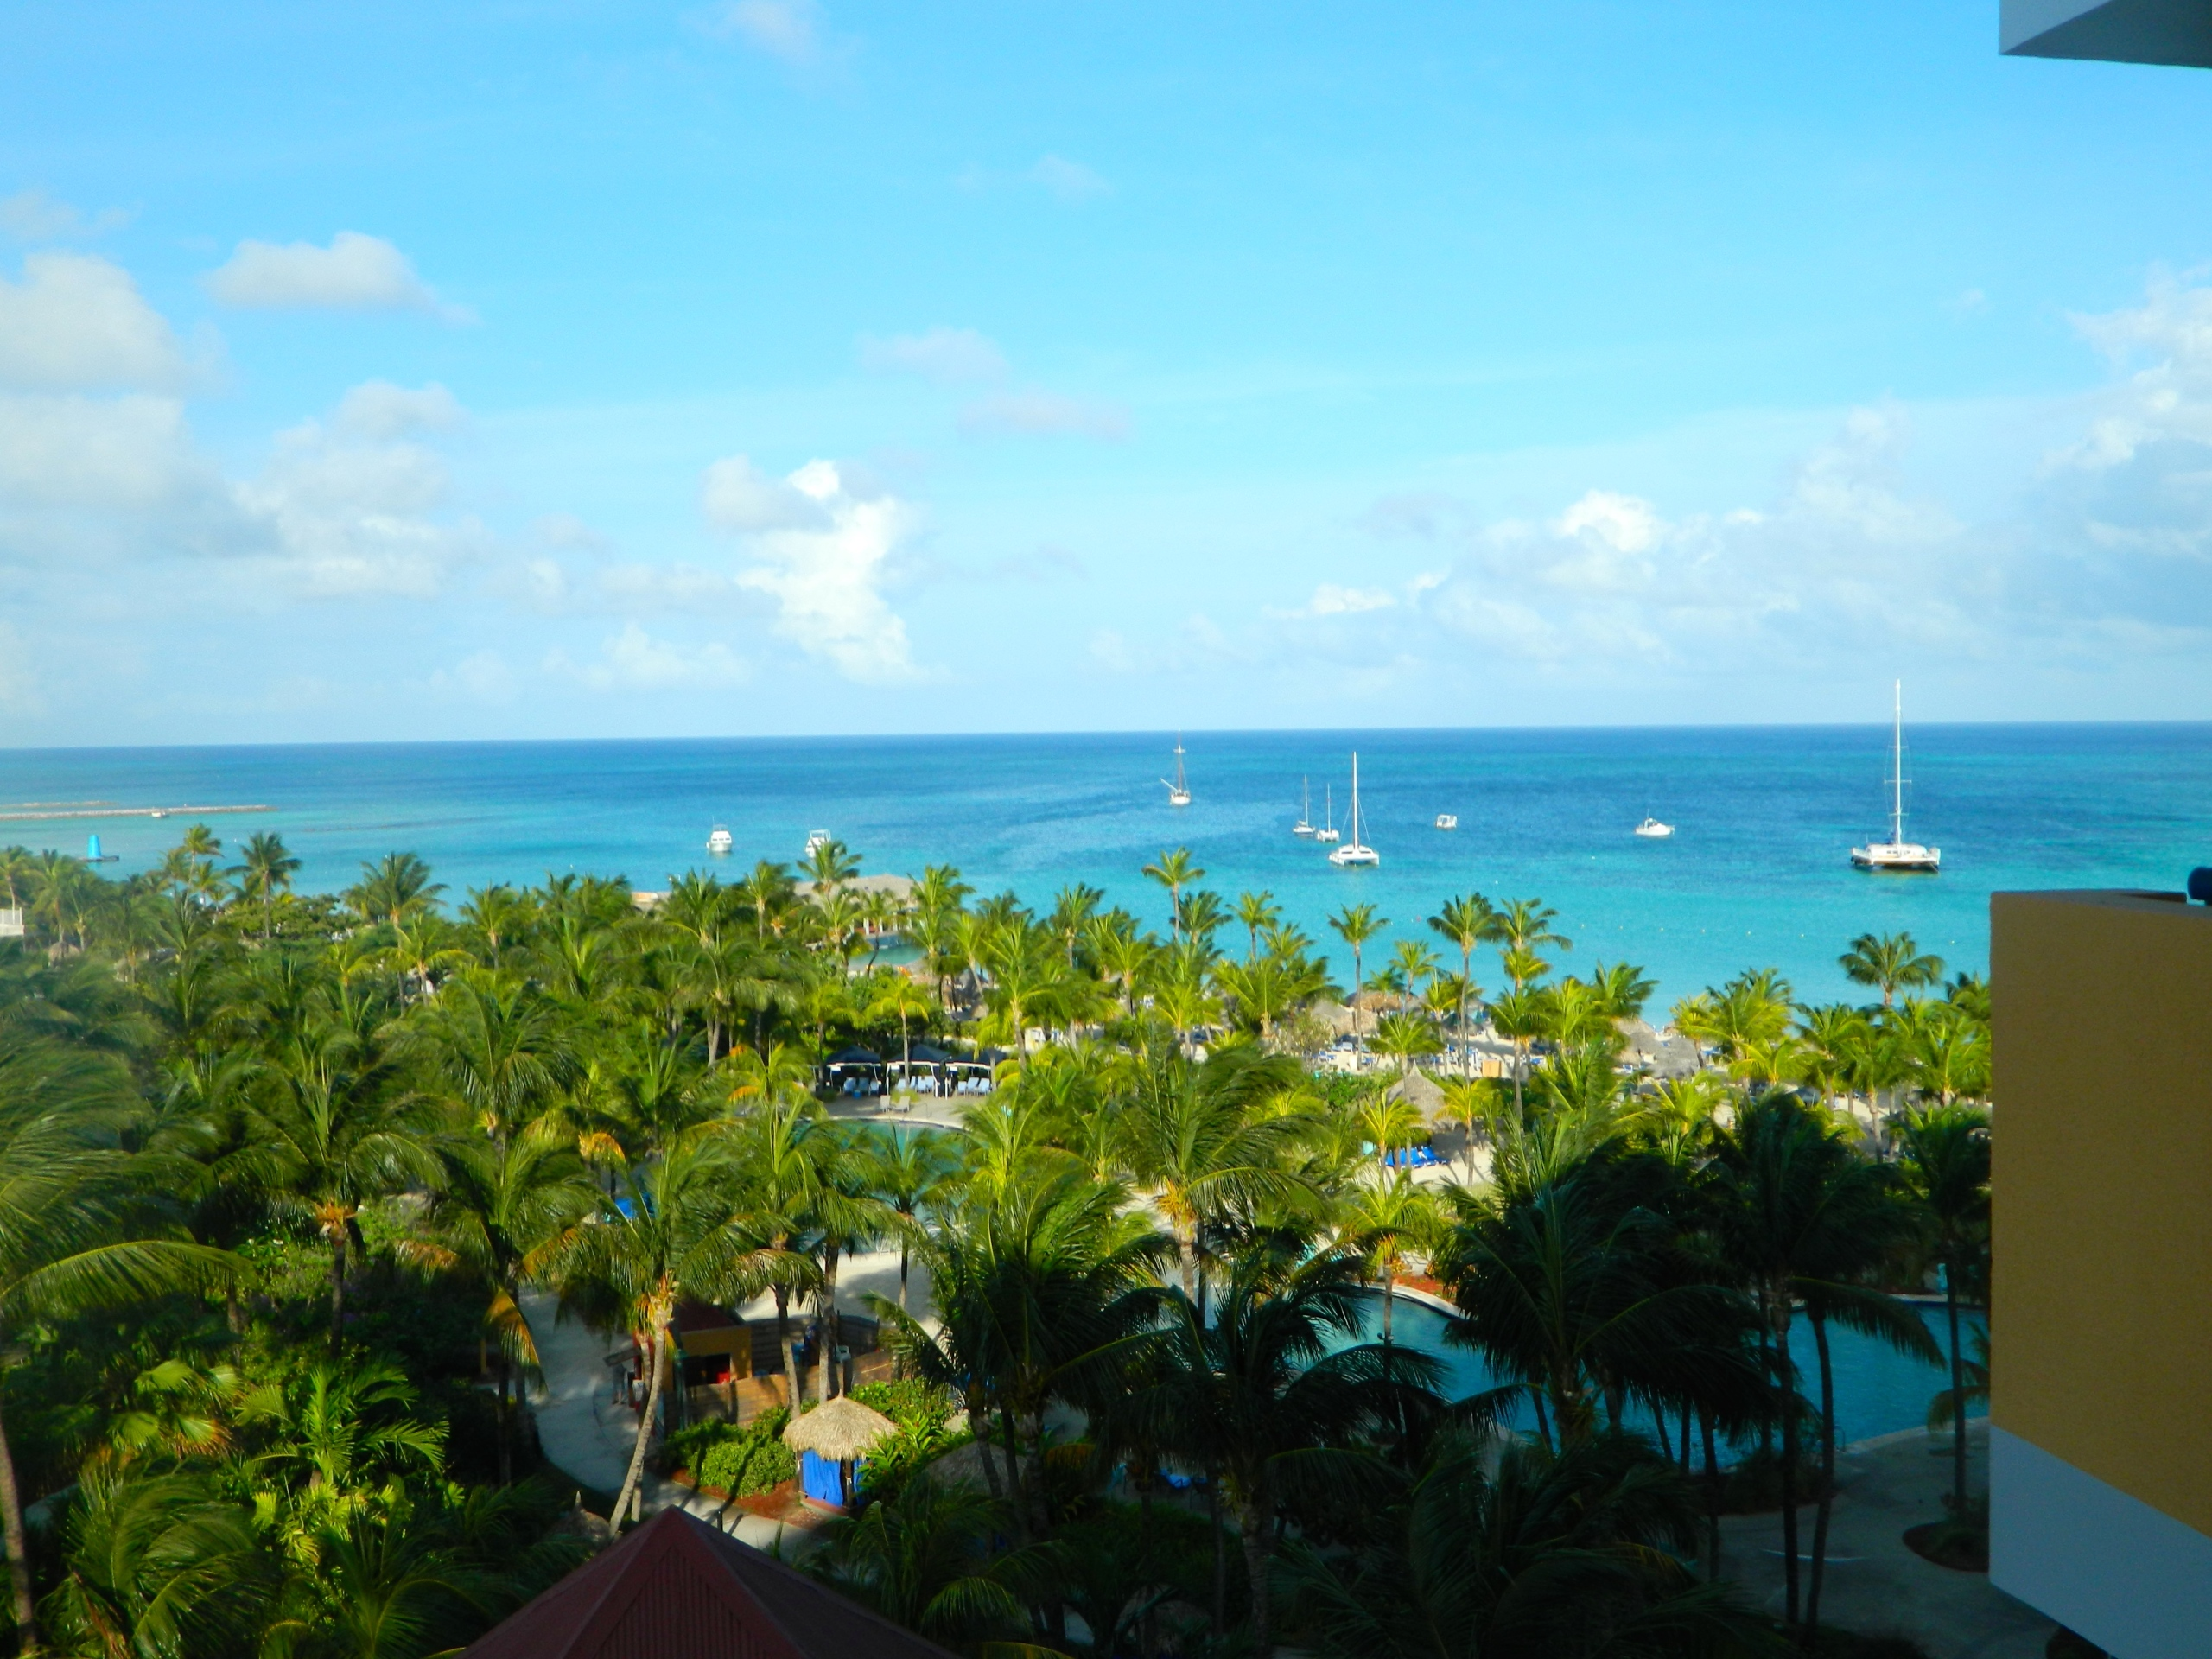 accommodation review: radisson aruba resort, casino & hotel (palm